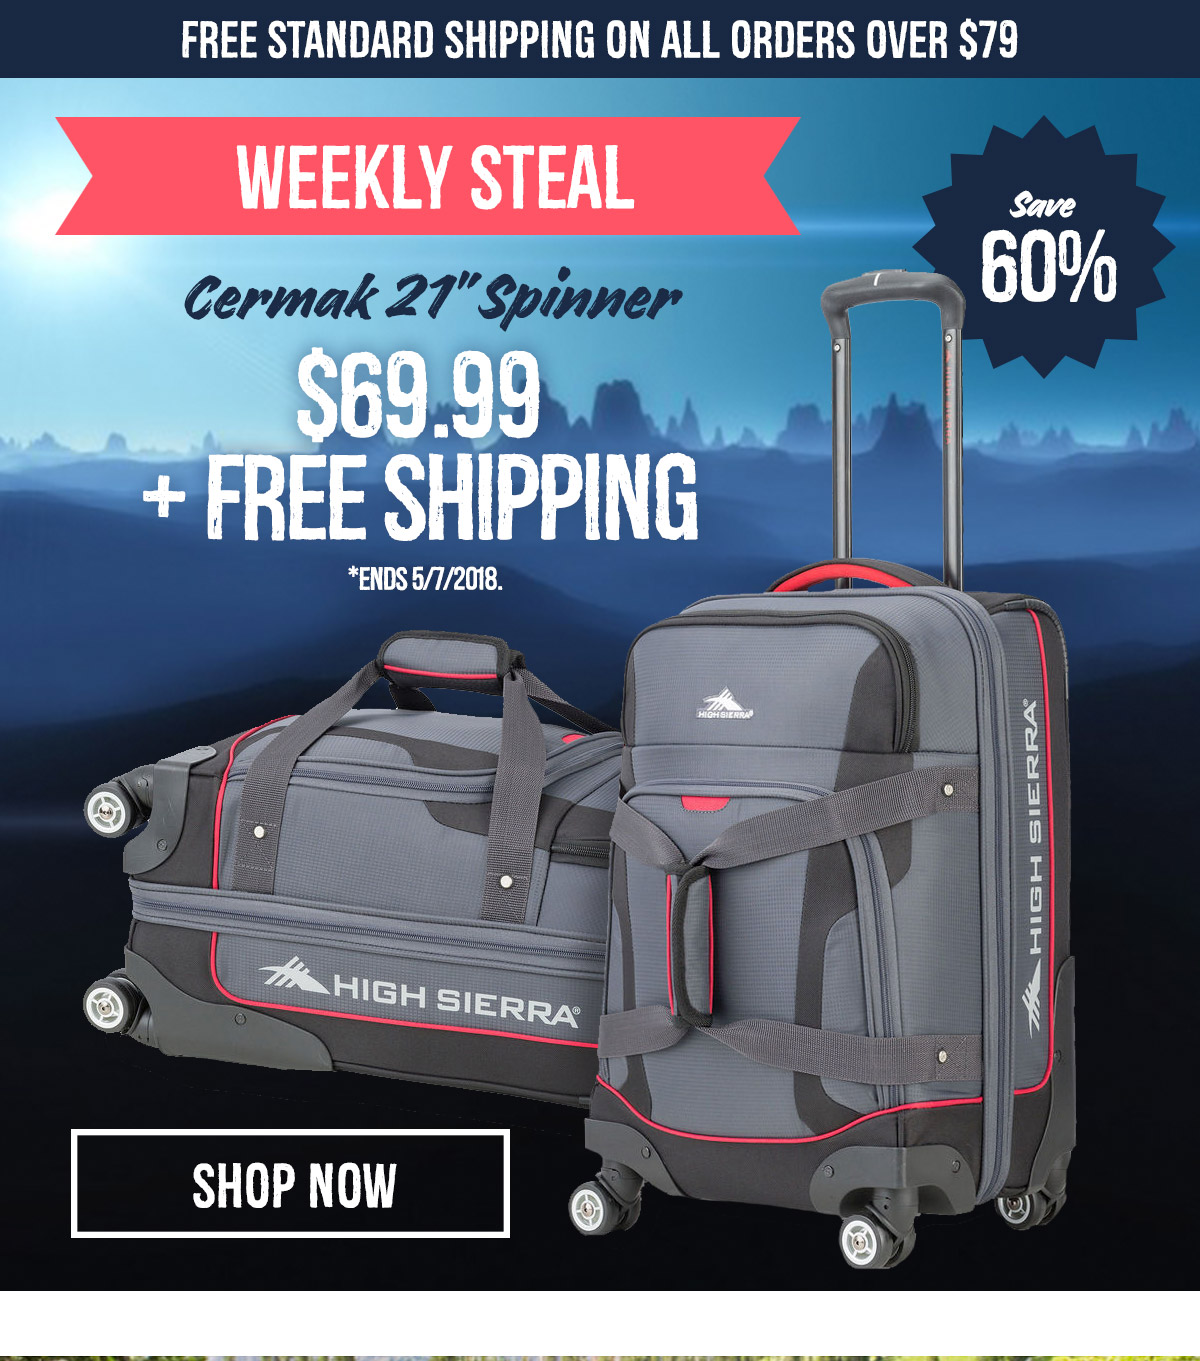 Weekly Steal! Cermak 21 Spinner $69.99 + Free Shipping - Shop Now